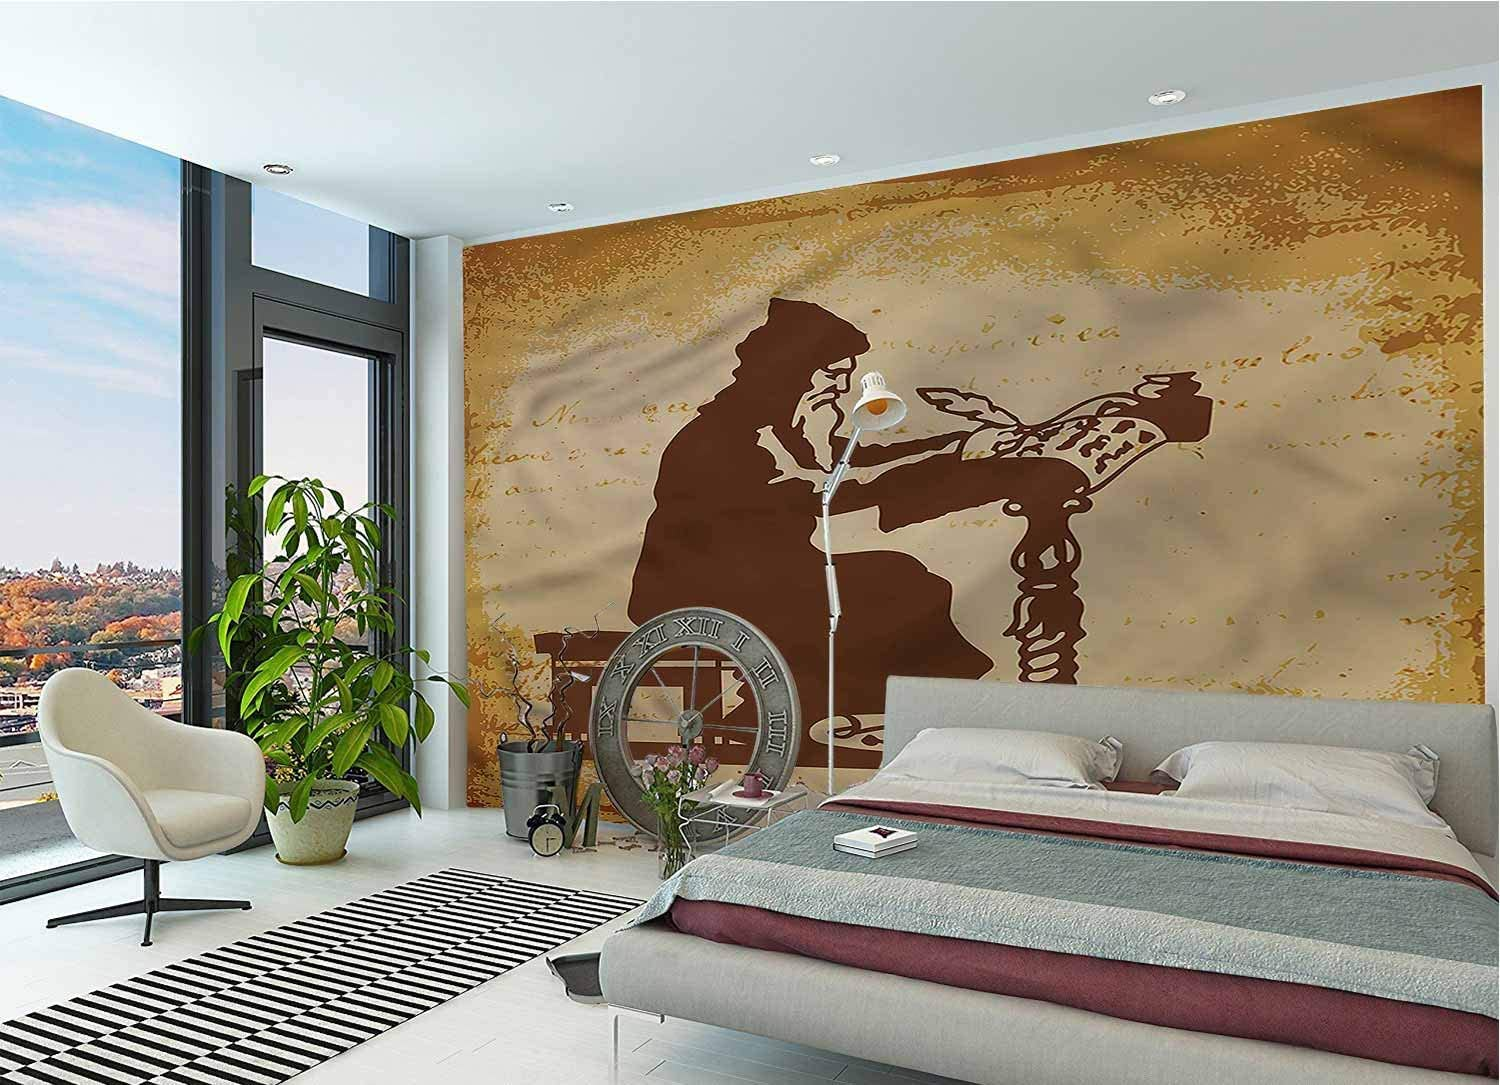 Amazon Com Lcggdb Medieval Wallpaper Mural Old Chronicle Of Events Peel Stick Wallpaper For Office Nursery School Family Decor Playroom Birthday Gift 96x66 Inch Posters Prints